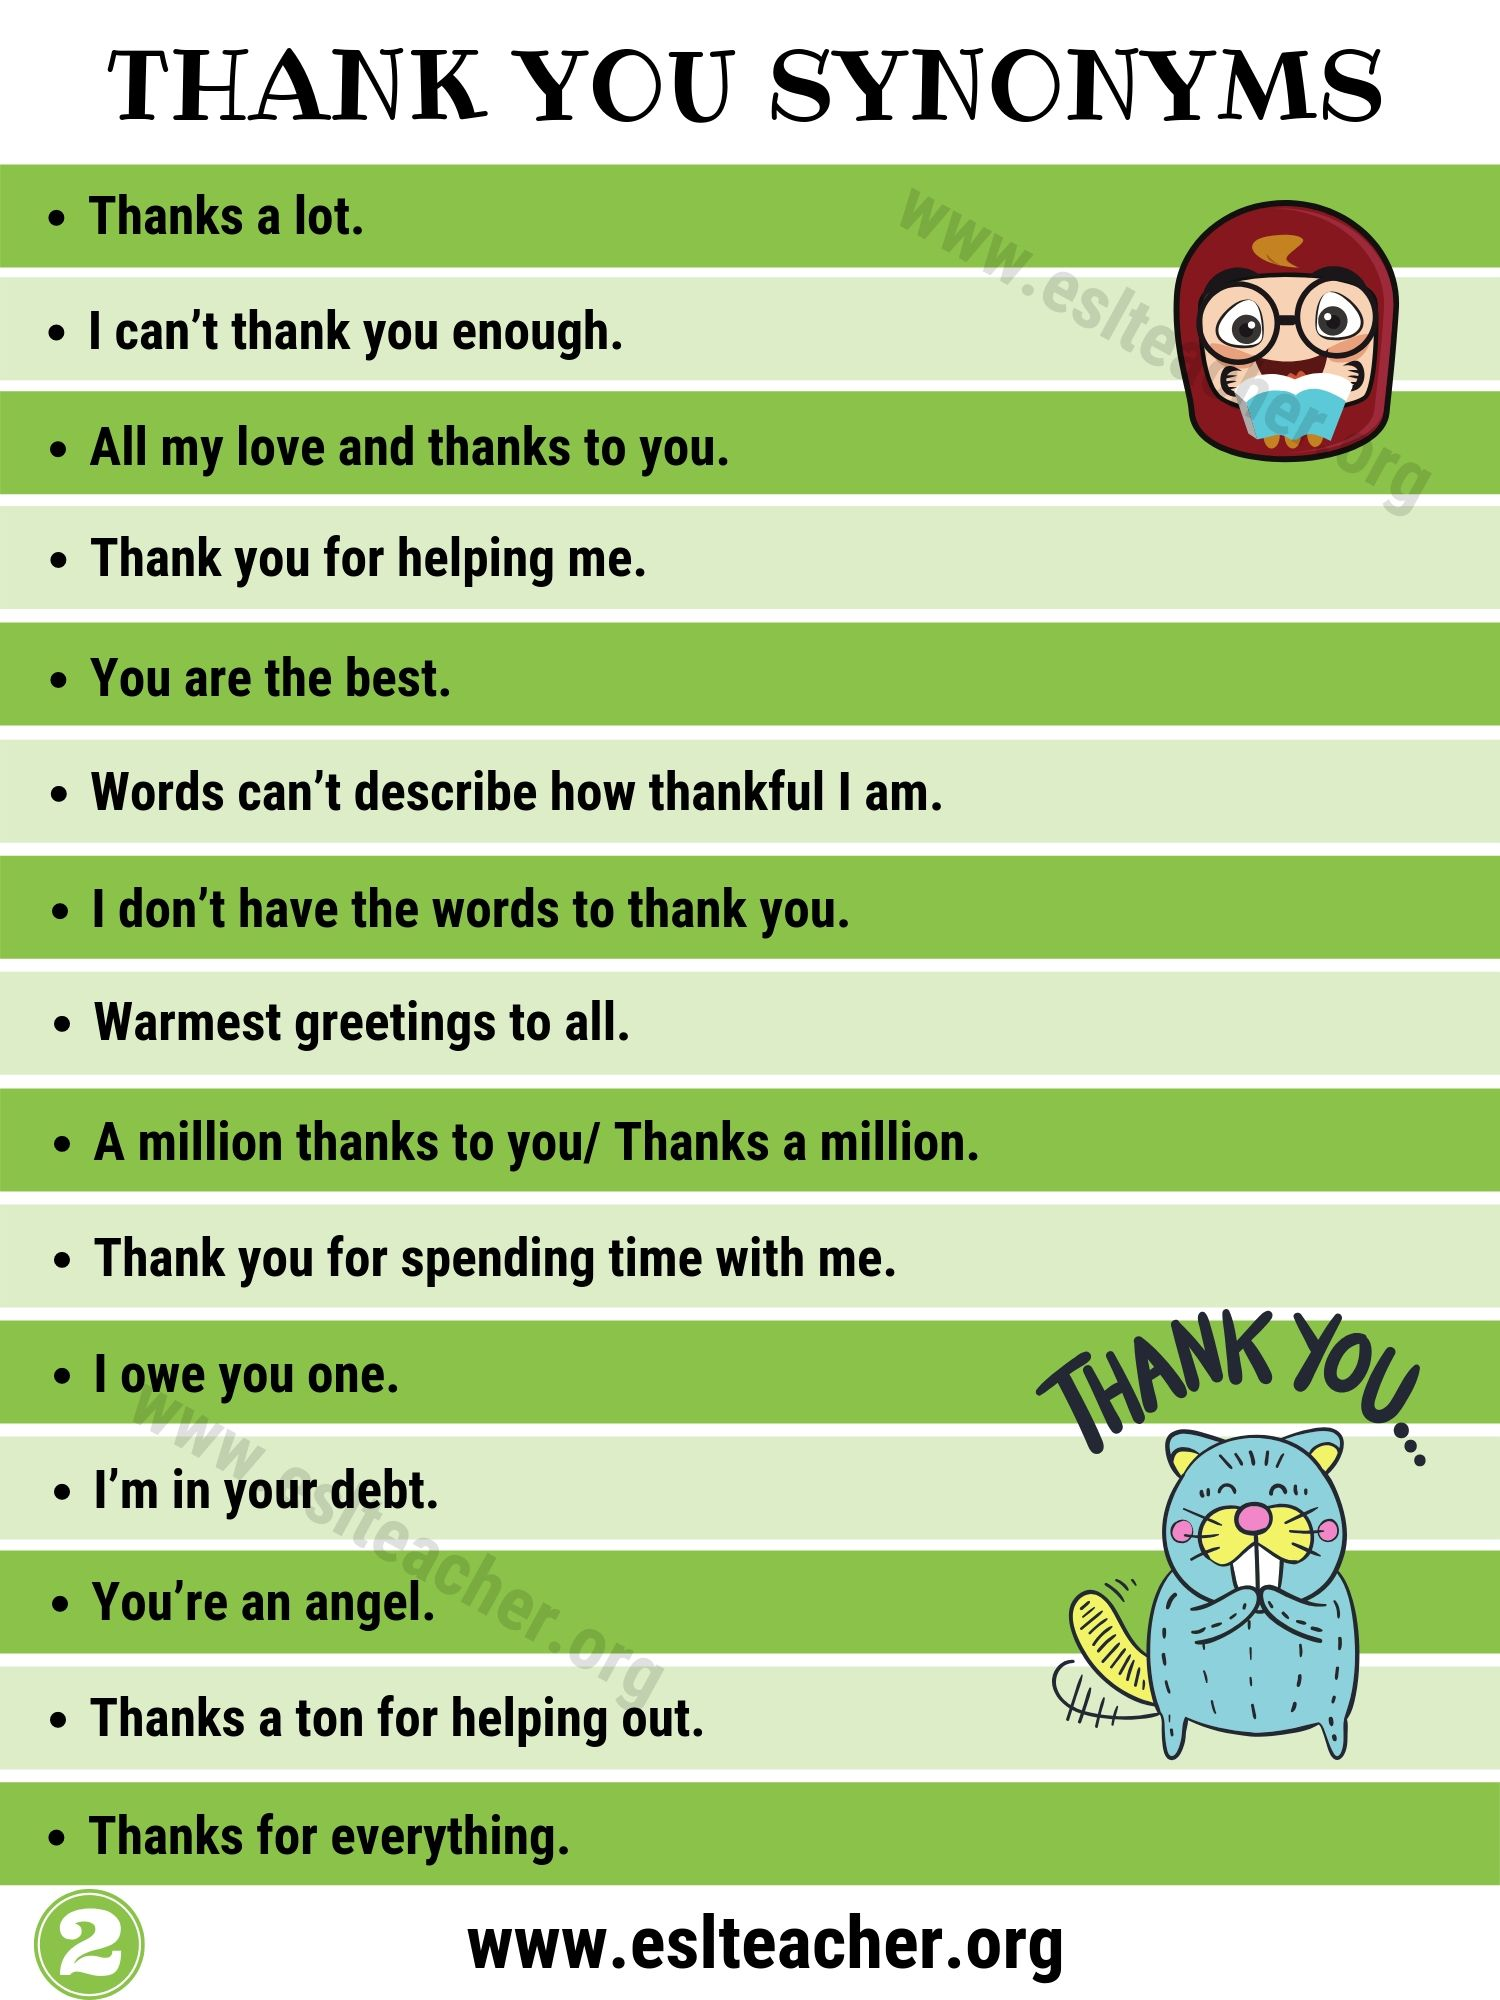 Synonyms for Thank You